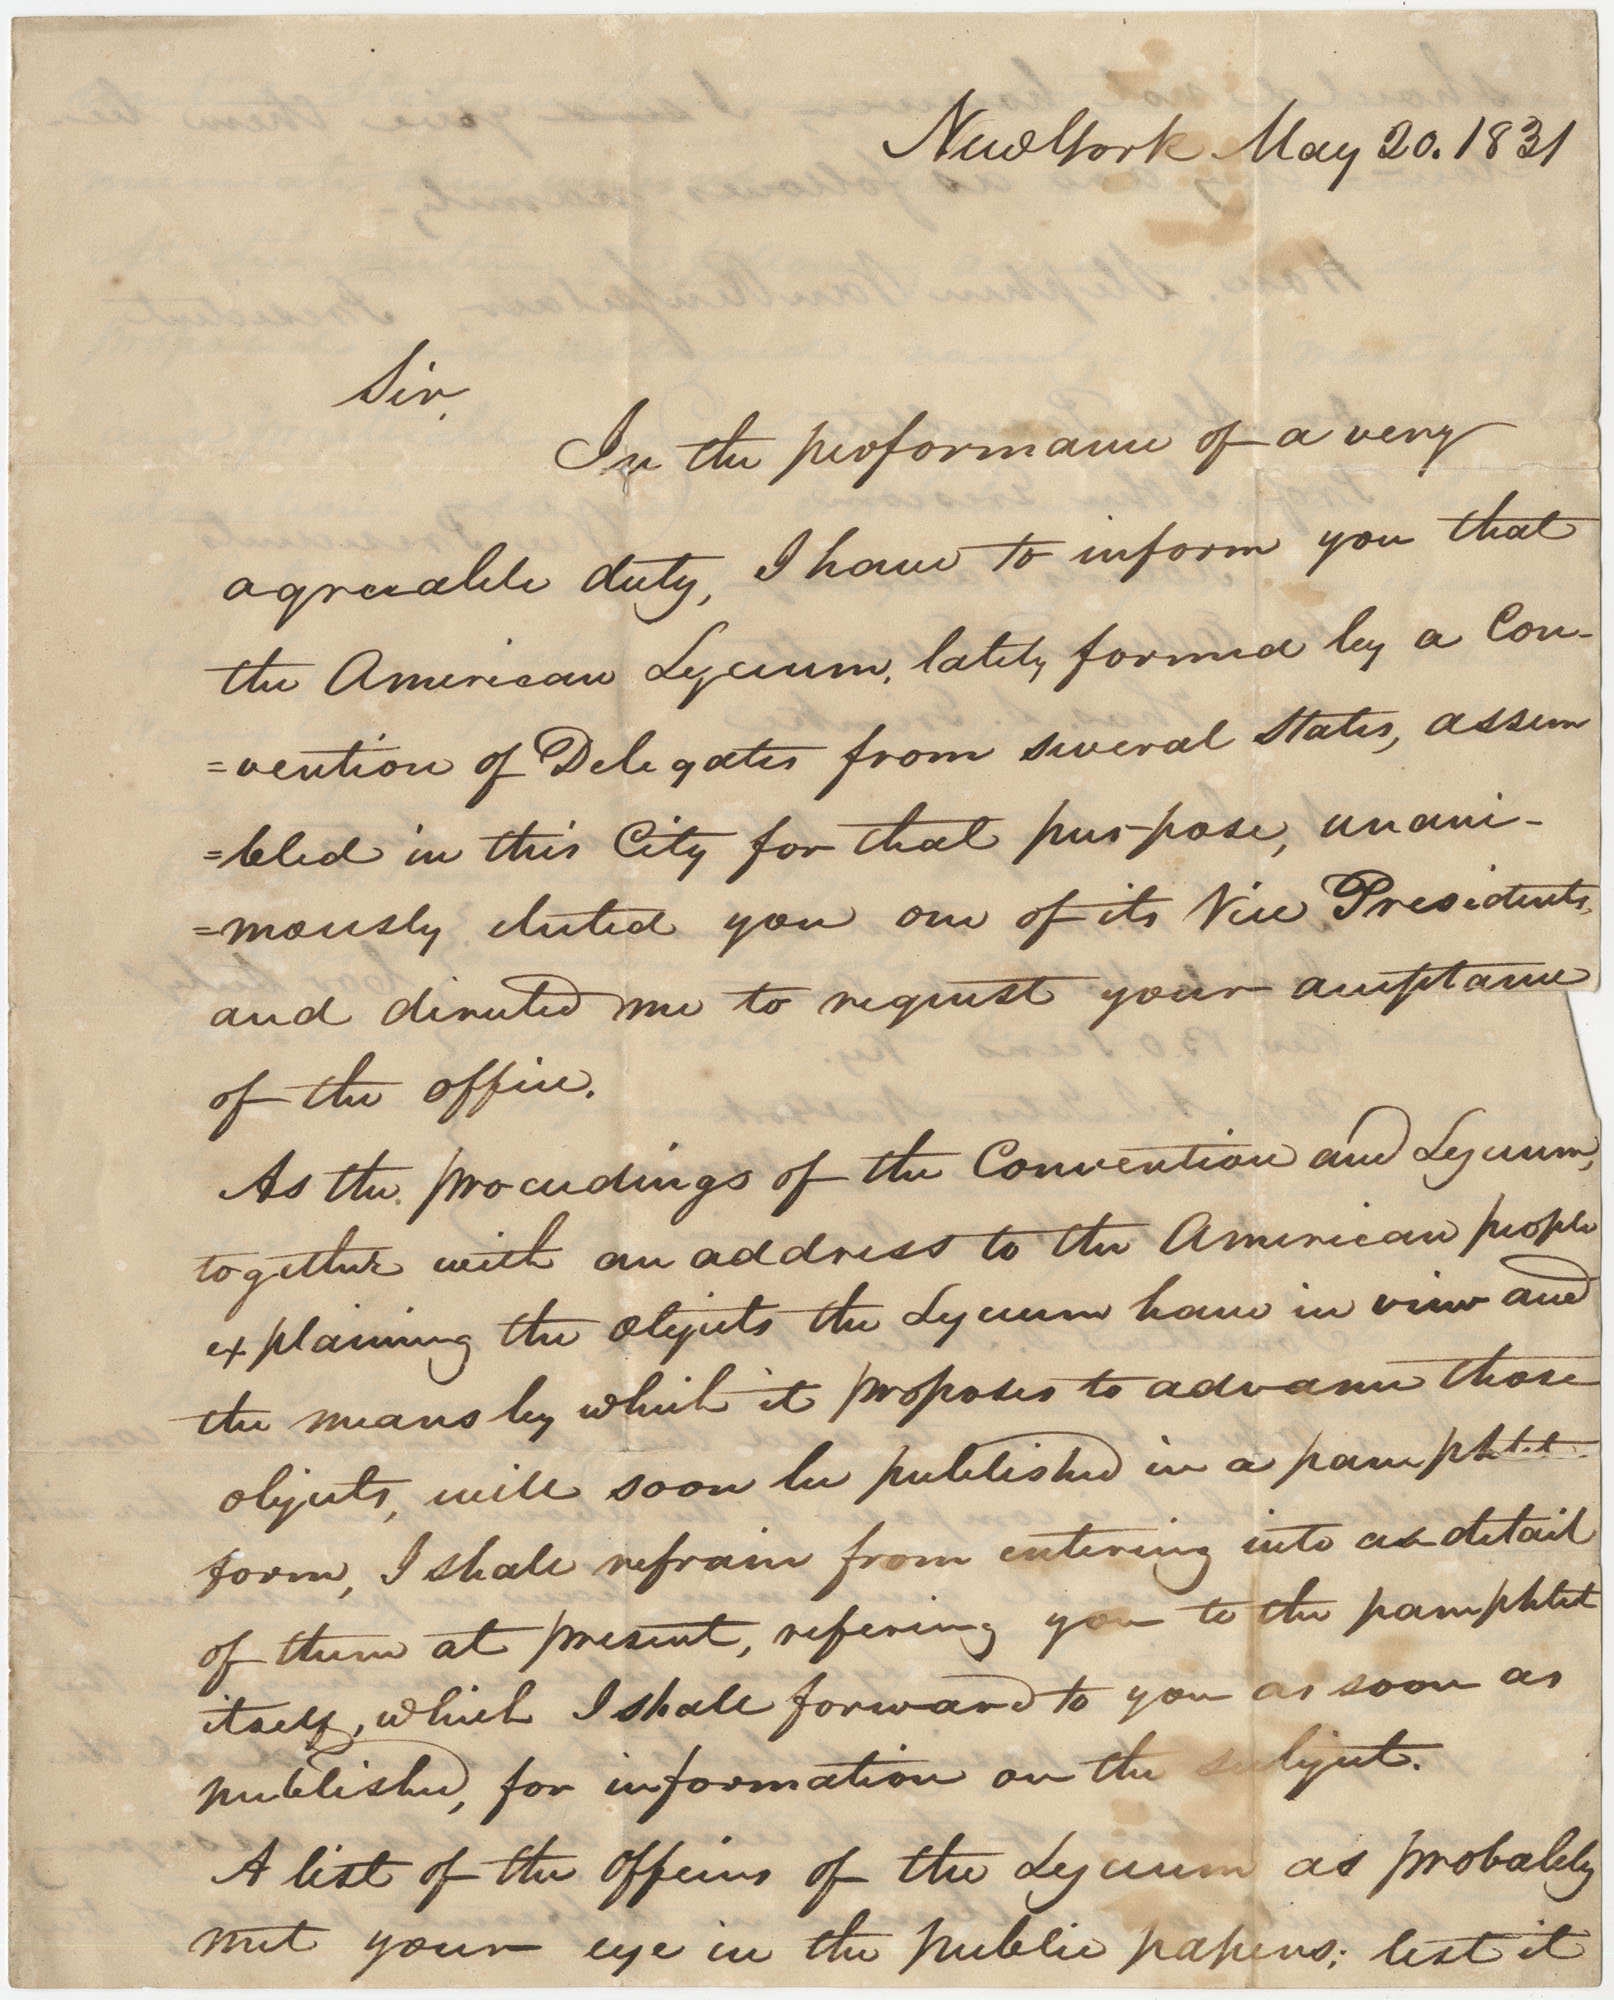 Letter to Thomas S. Grimke from Nathaniel Sargent, May 20, 1831